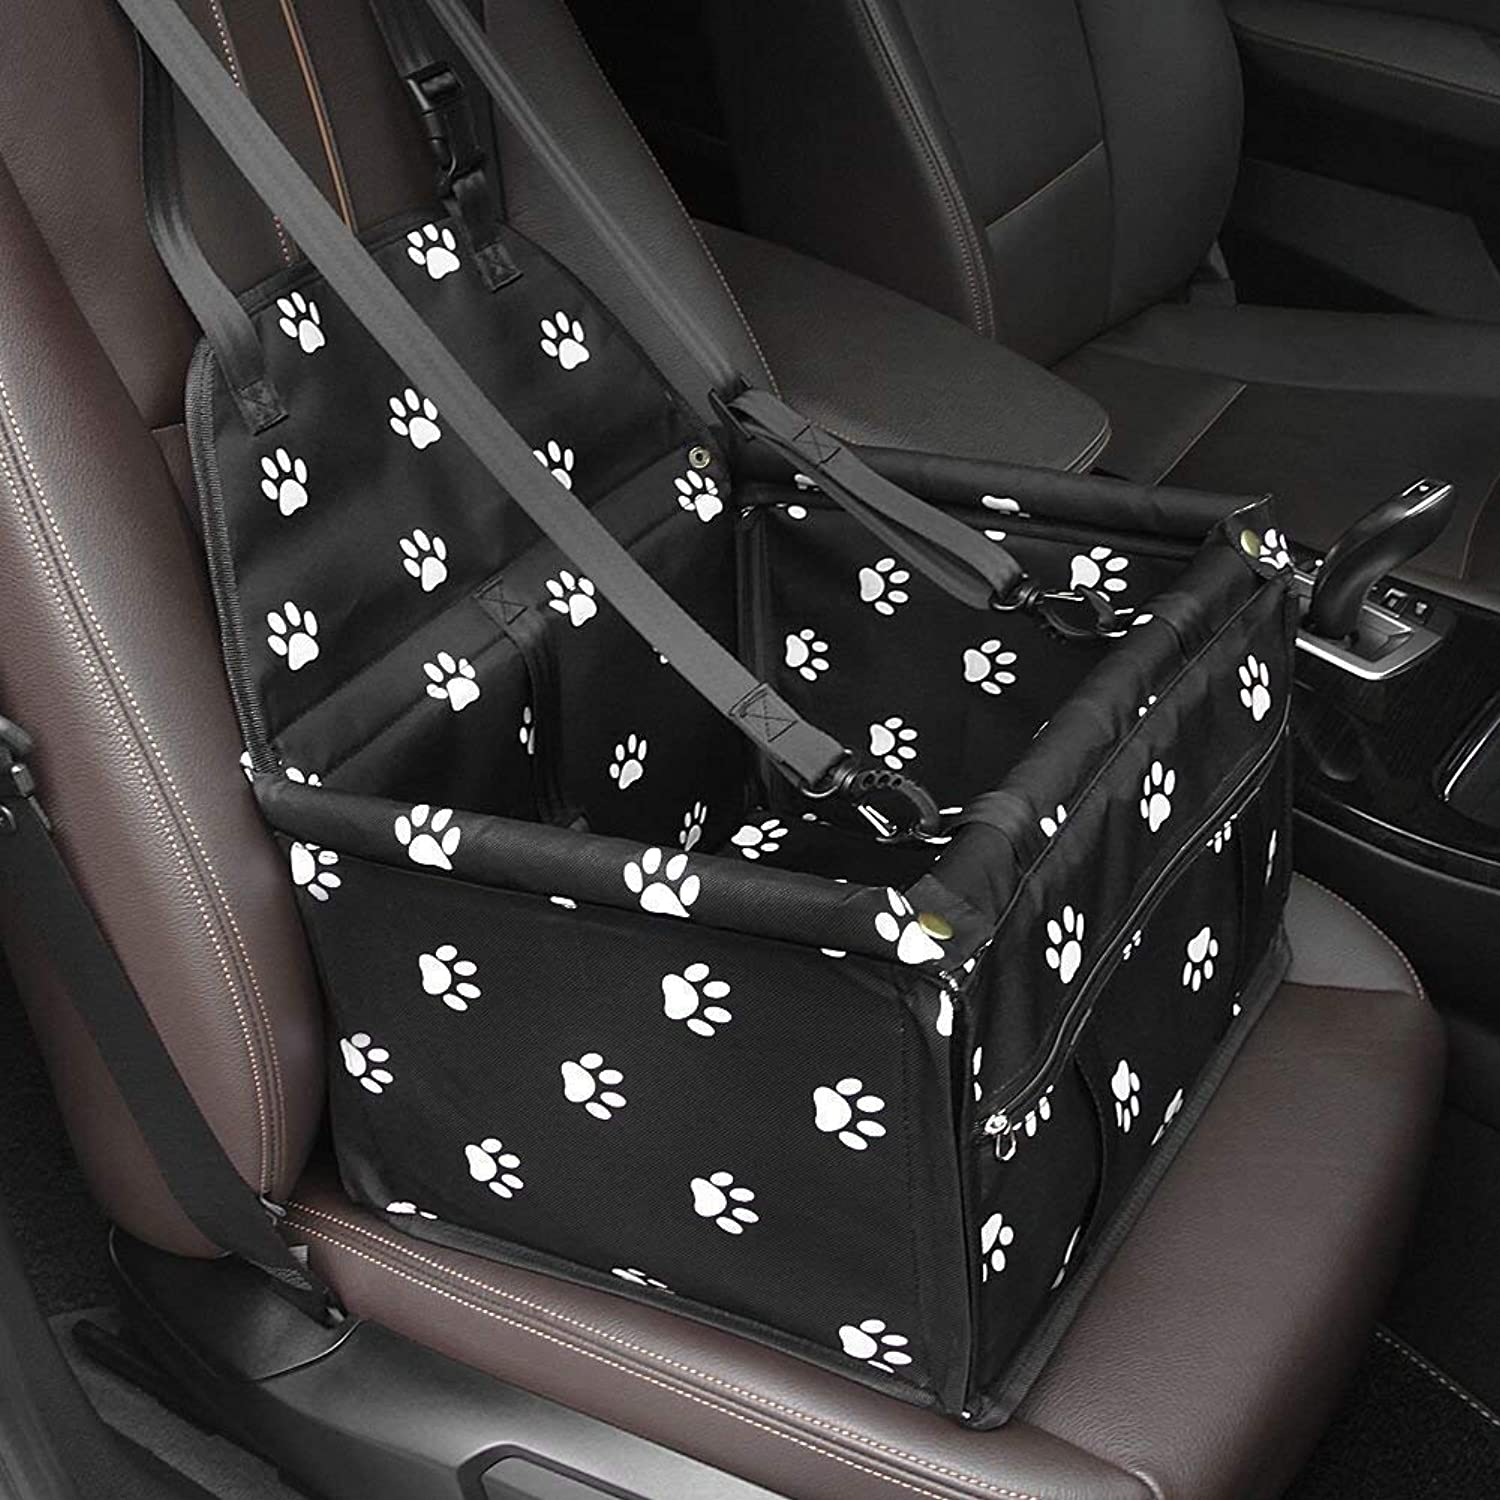 Dog Car Seat, Upgrade Deluxe Portable Pet Dog Booster Car Seat with ClipOn Safety Leash and Dog Blanket for Small and Medium Pets